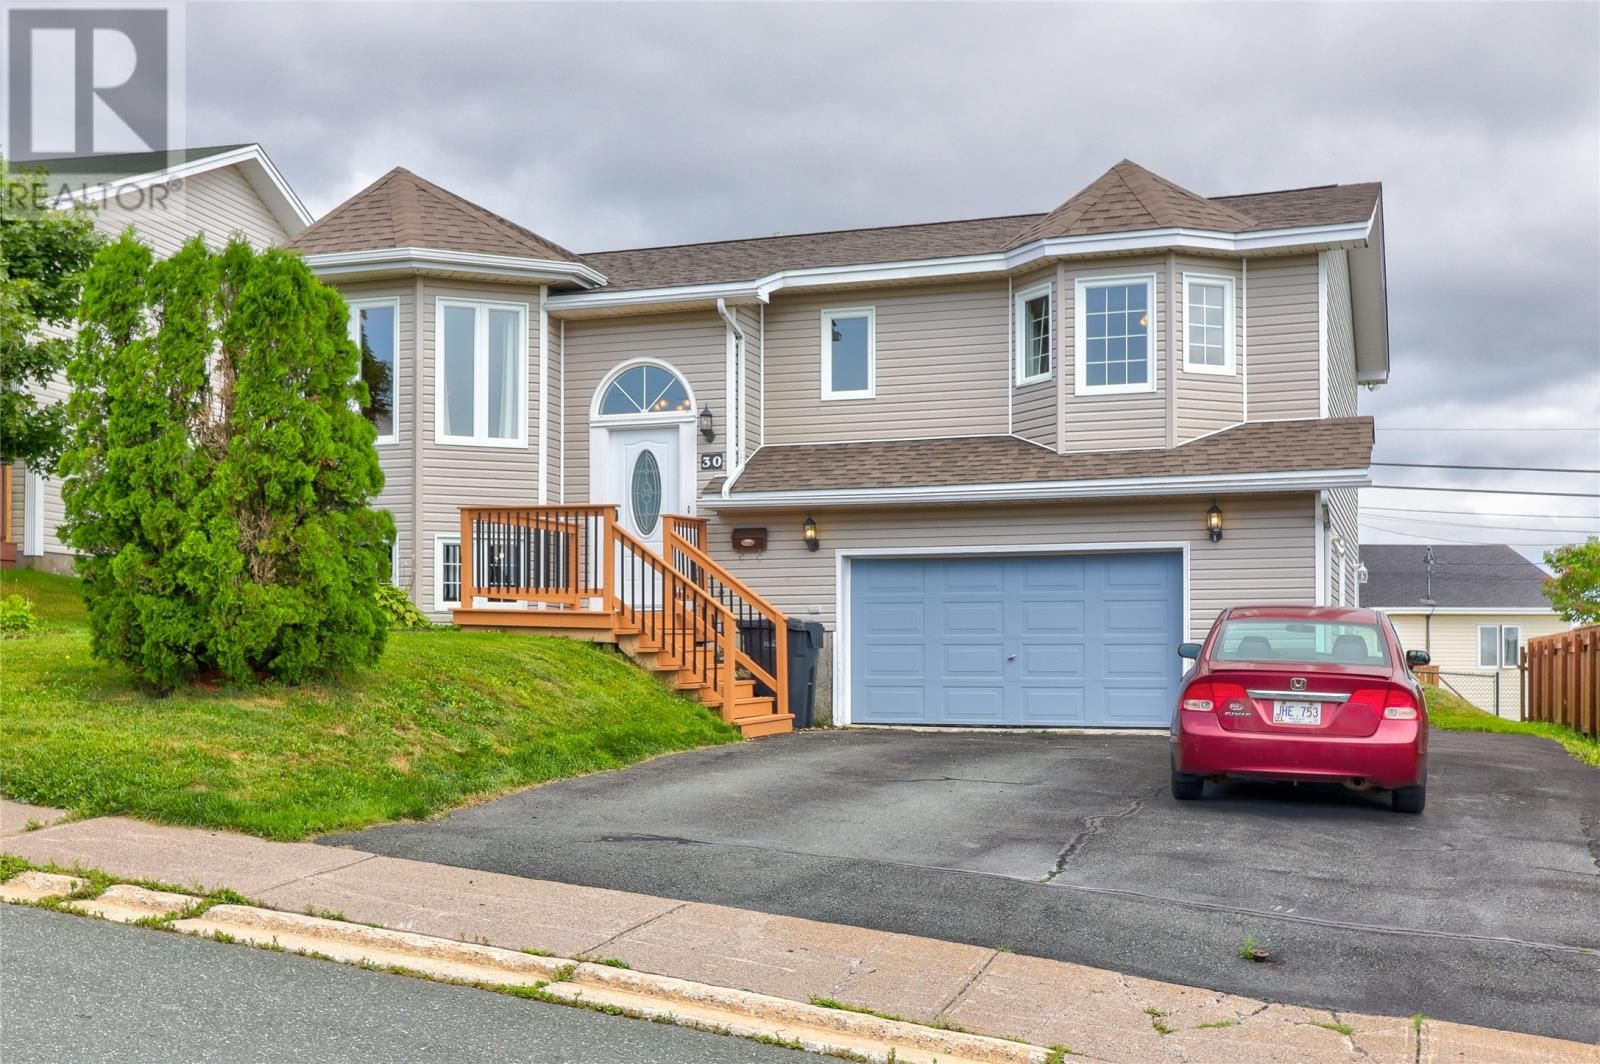 Main Photo: 30 Imogene Crescent in Paradise: House for sale : MLS®# 1236189